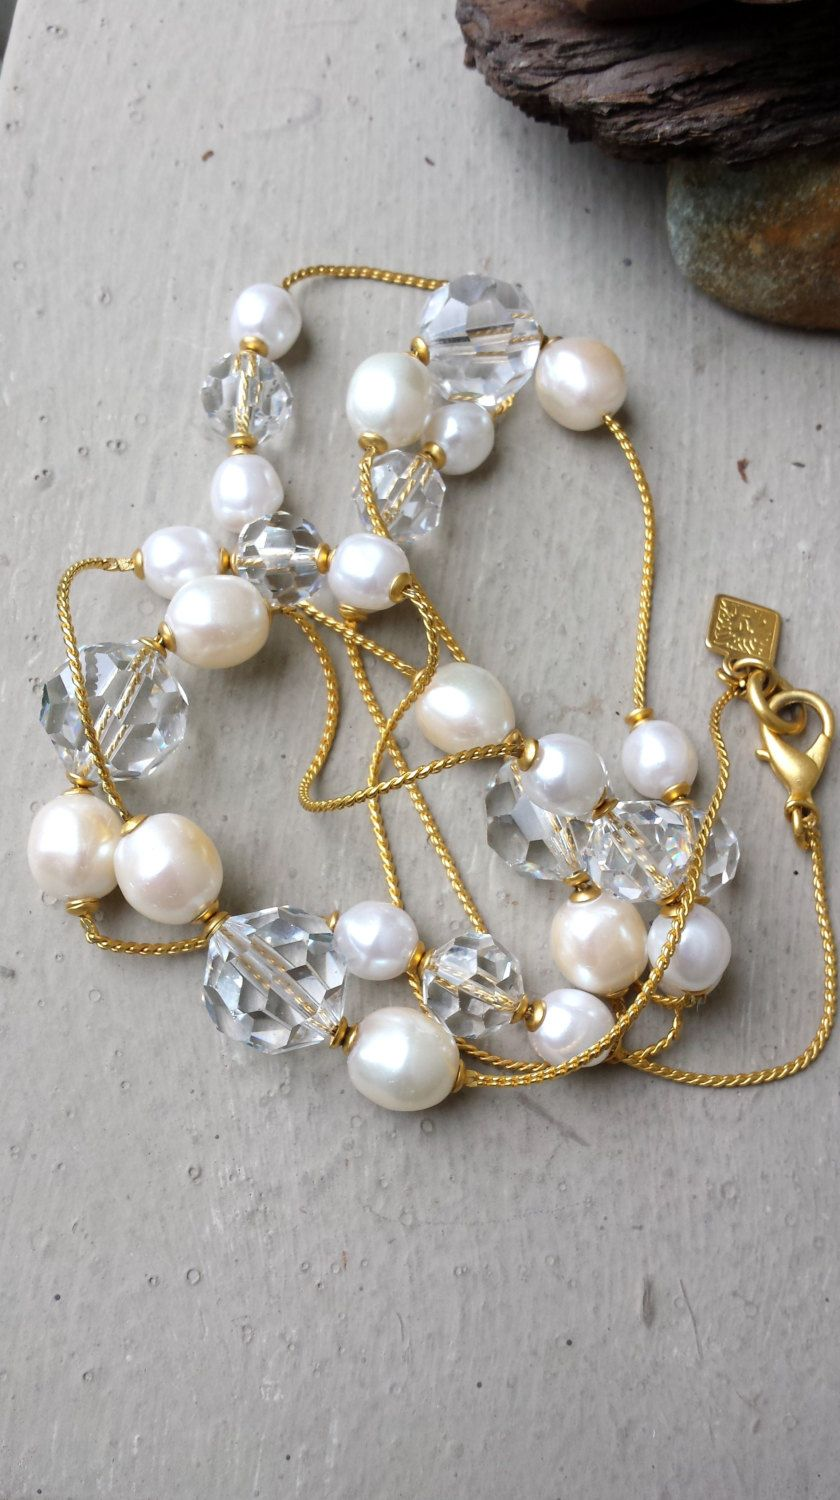 cdf93611d95a Classic Anne Klein Long White Faux Pearl Clear Glass Crystal and Gold Tone  Metal Chain Necklace 37